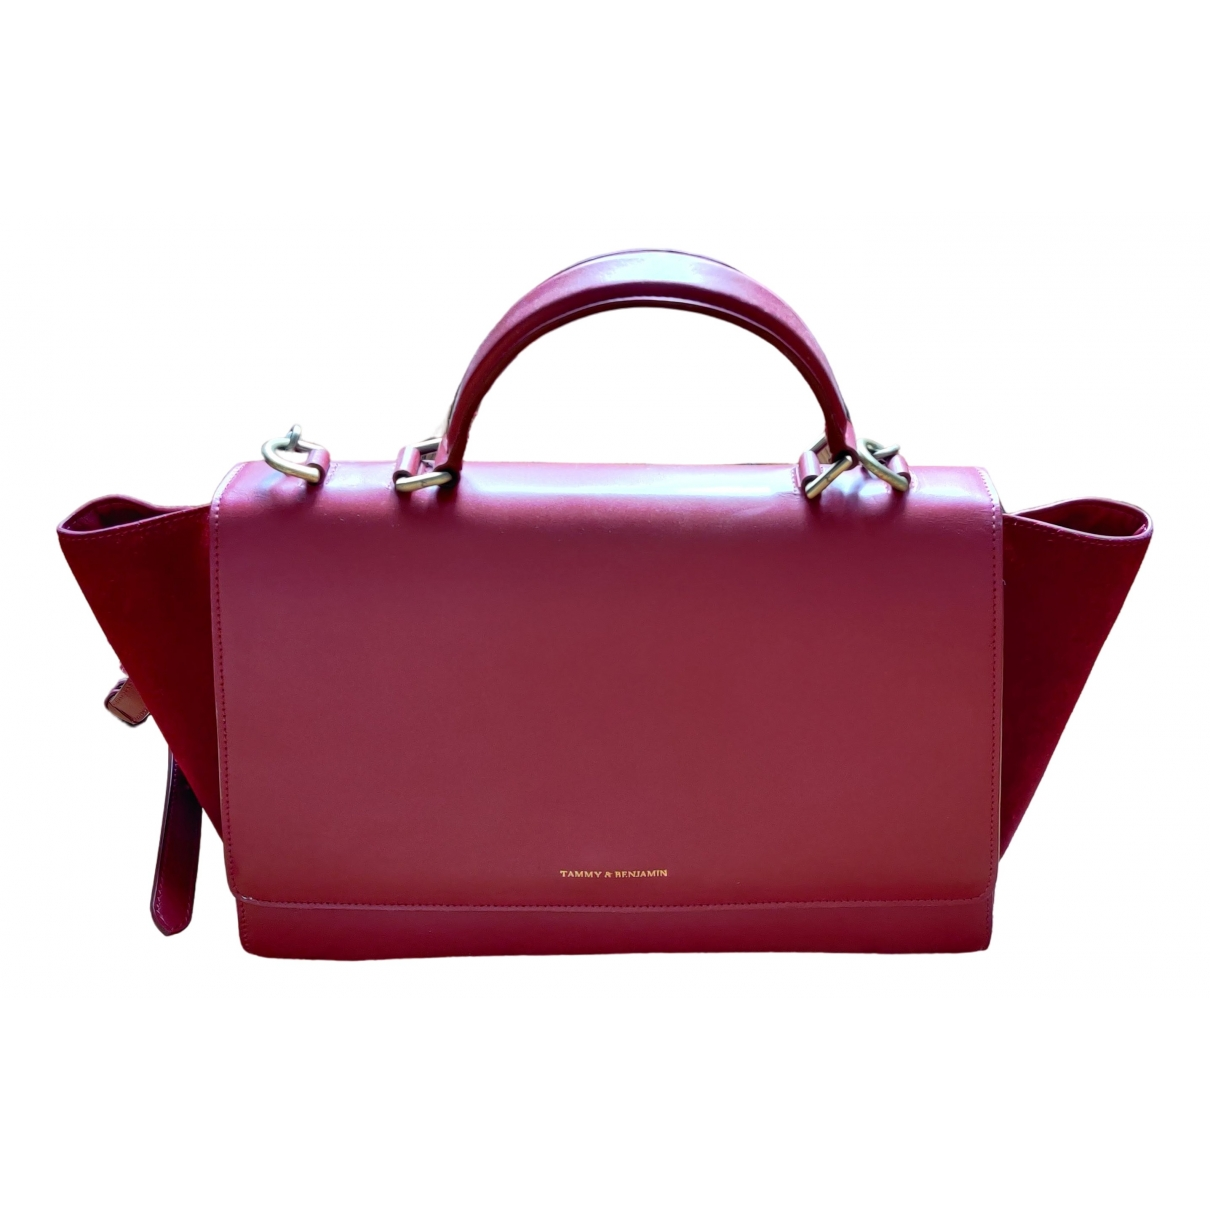 Tammy And Benjamin \N Red Leather handbag for Women \N